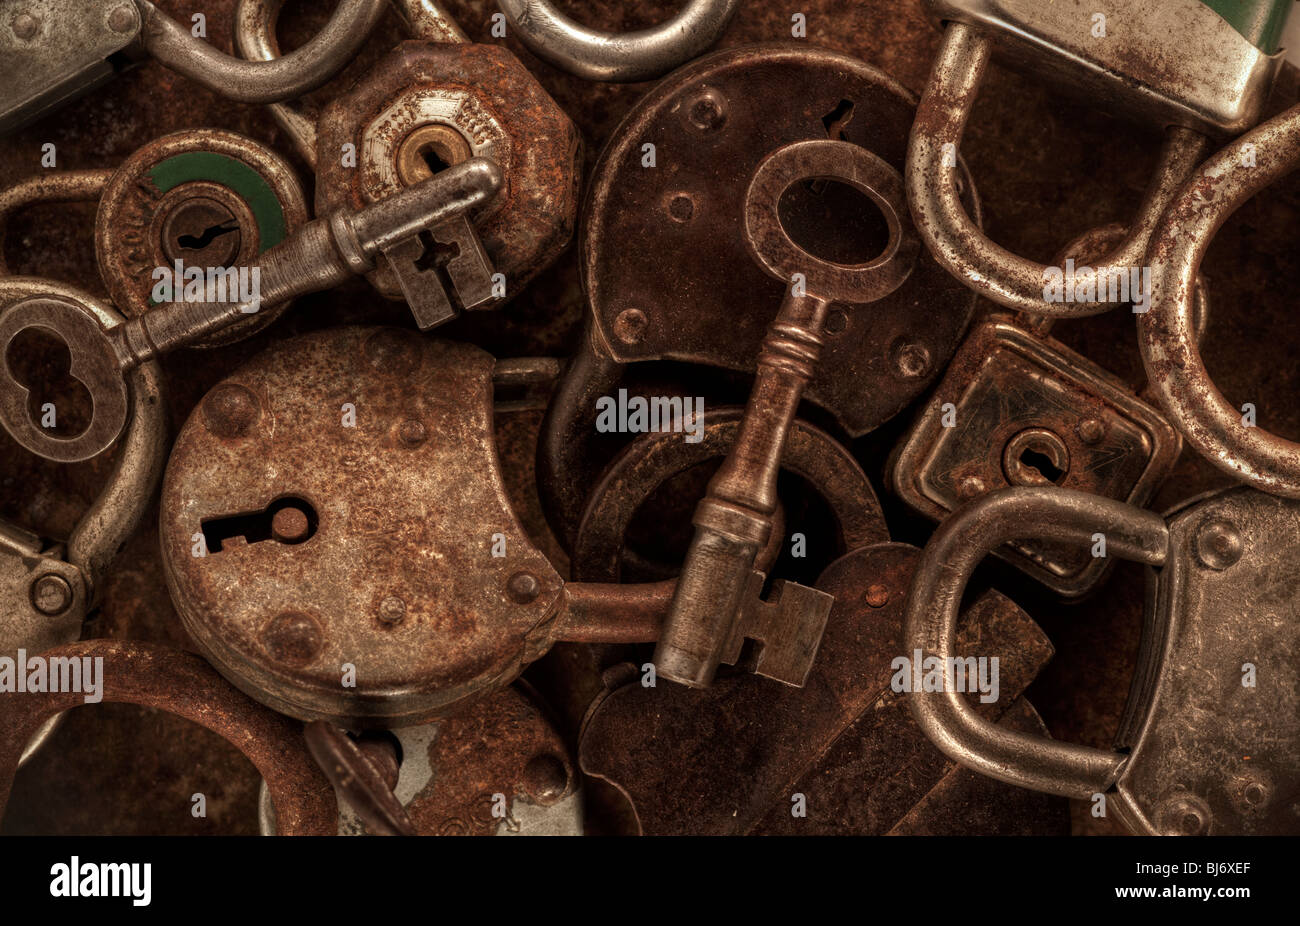 Keys and padlocks still life - Stock Image